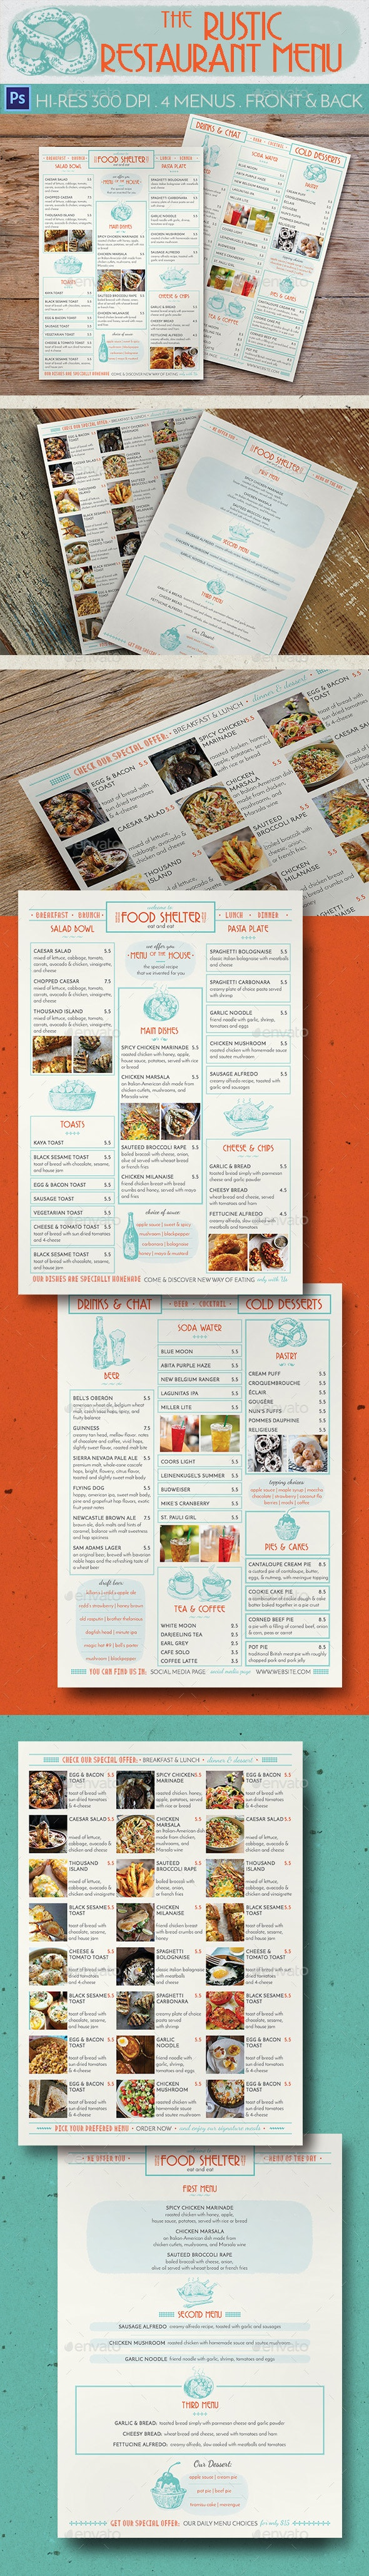 Rustic Restaurant Menu - Food Menus Print Templates